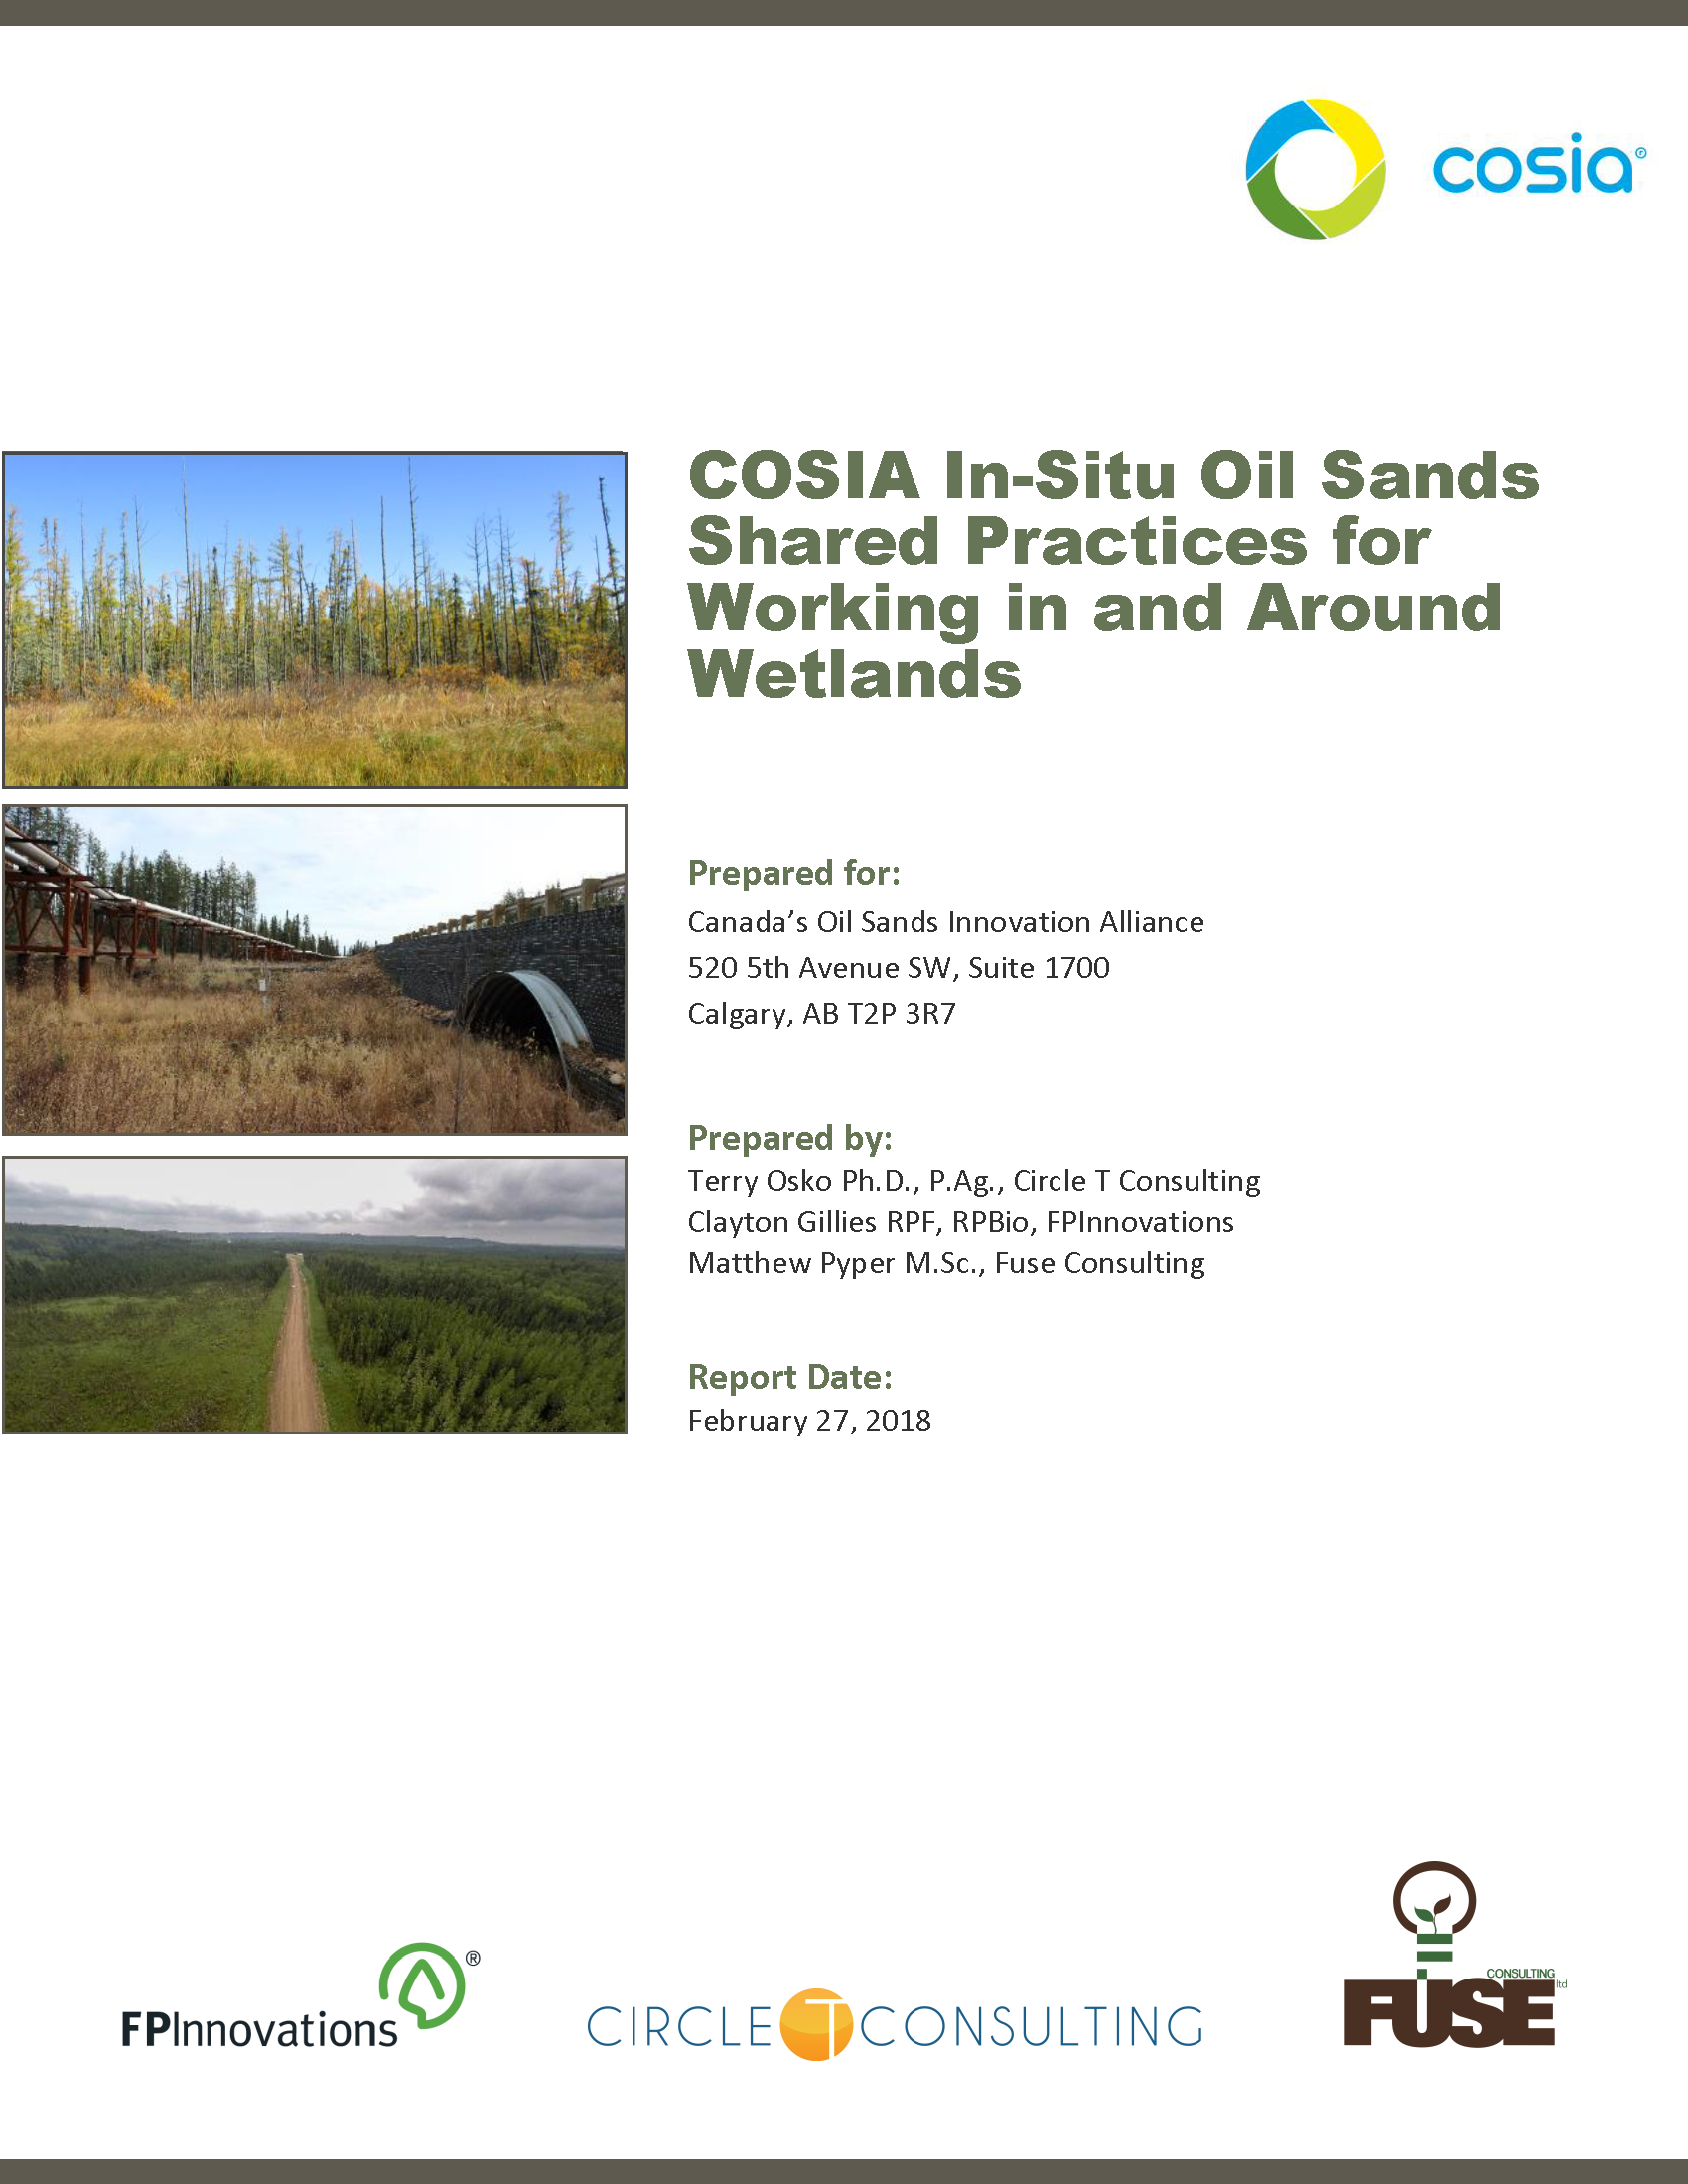 COSIA-WetlandSharedPracticesReport-2018-02-27_Page_01.png